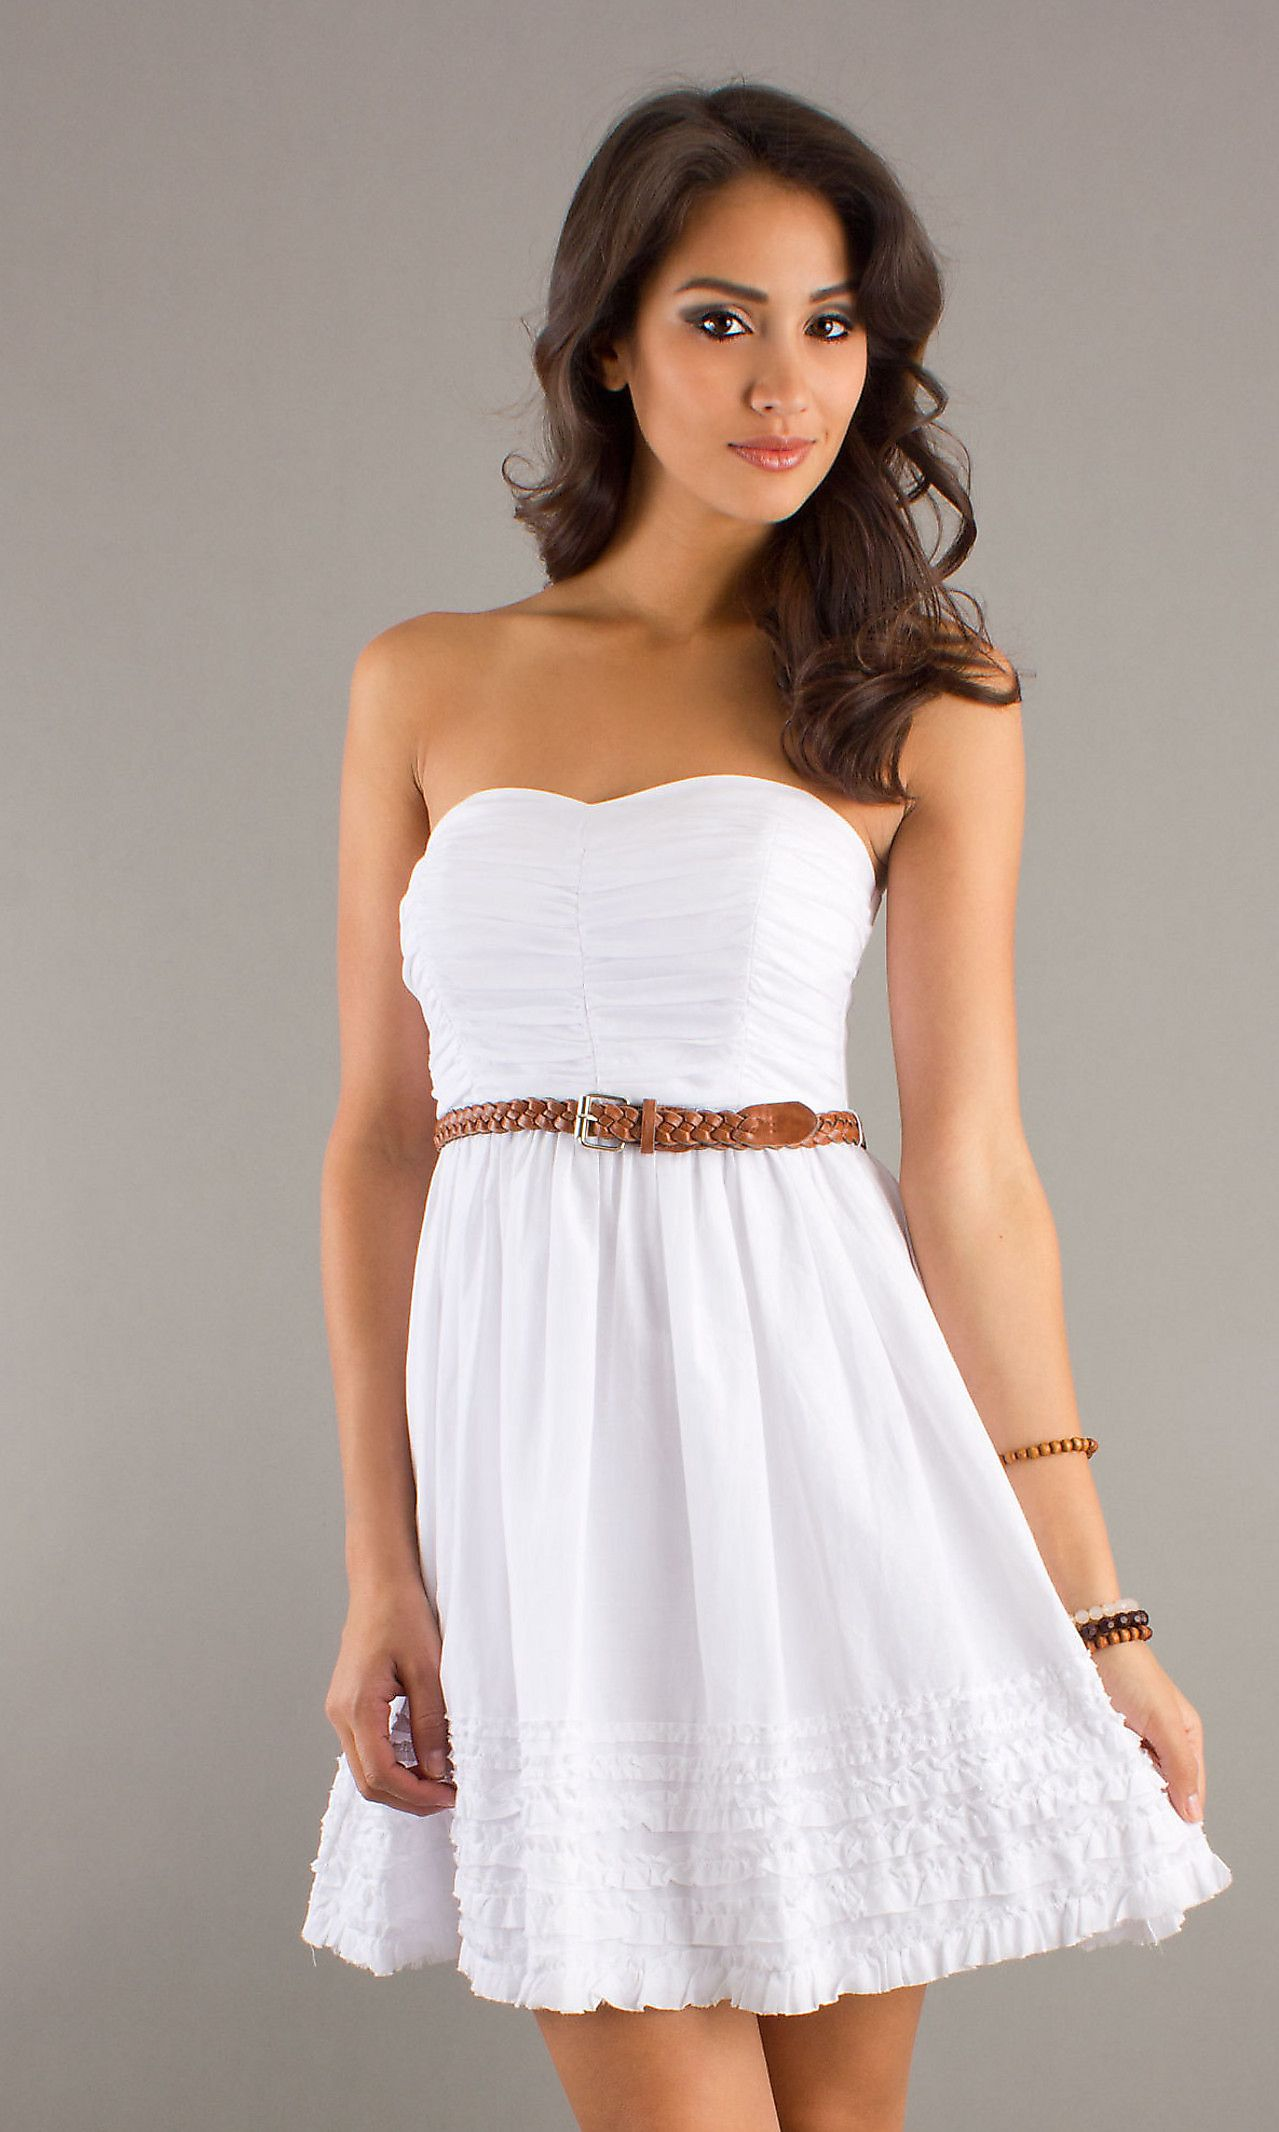 1000  images about WHITE DRESSES on Pinterest - Illusion neckline ...